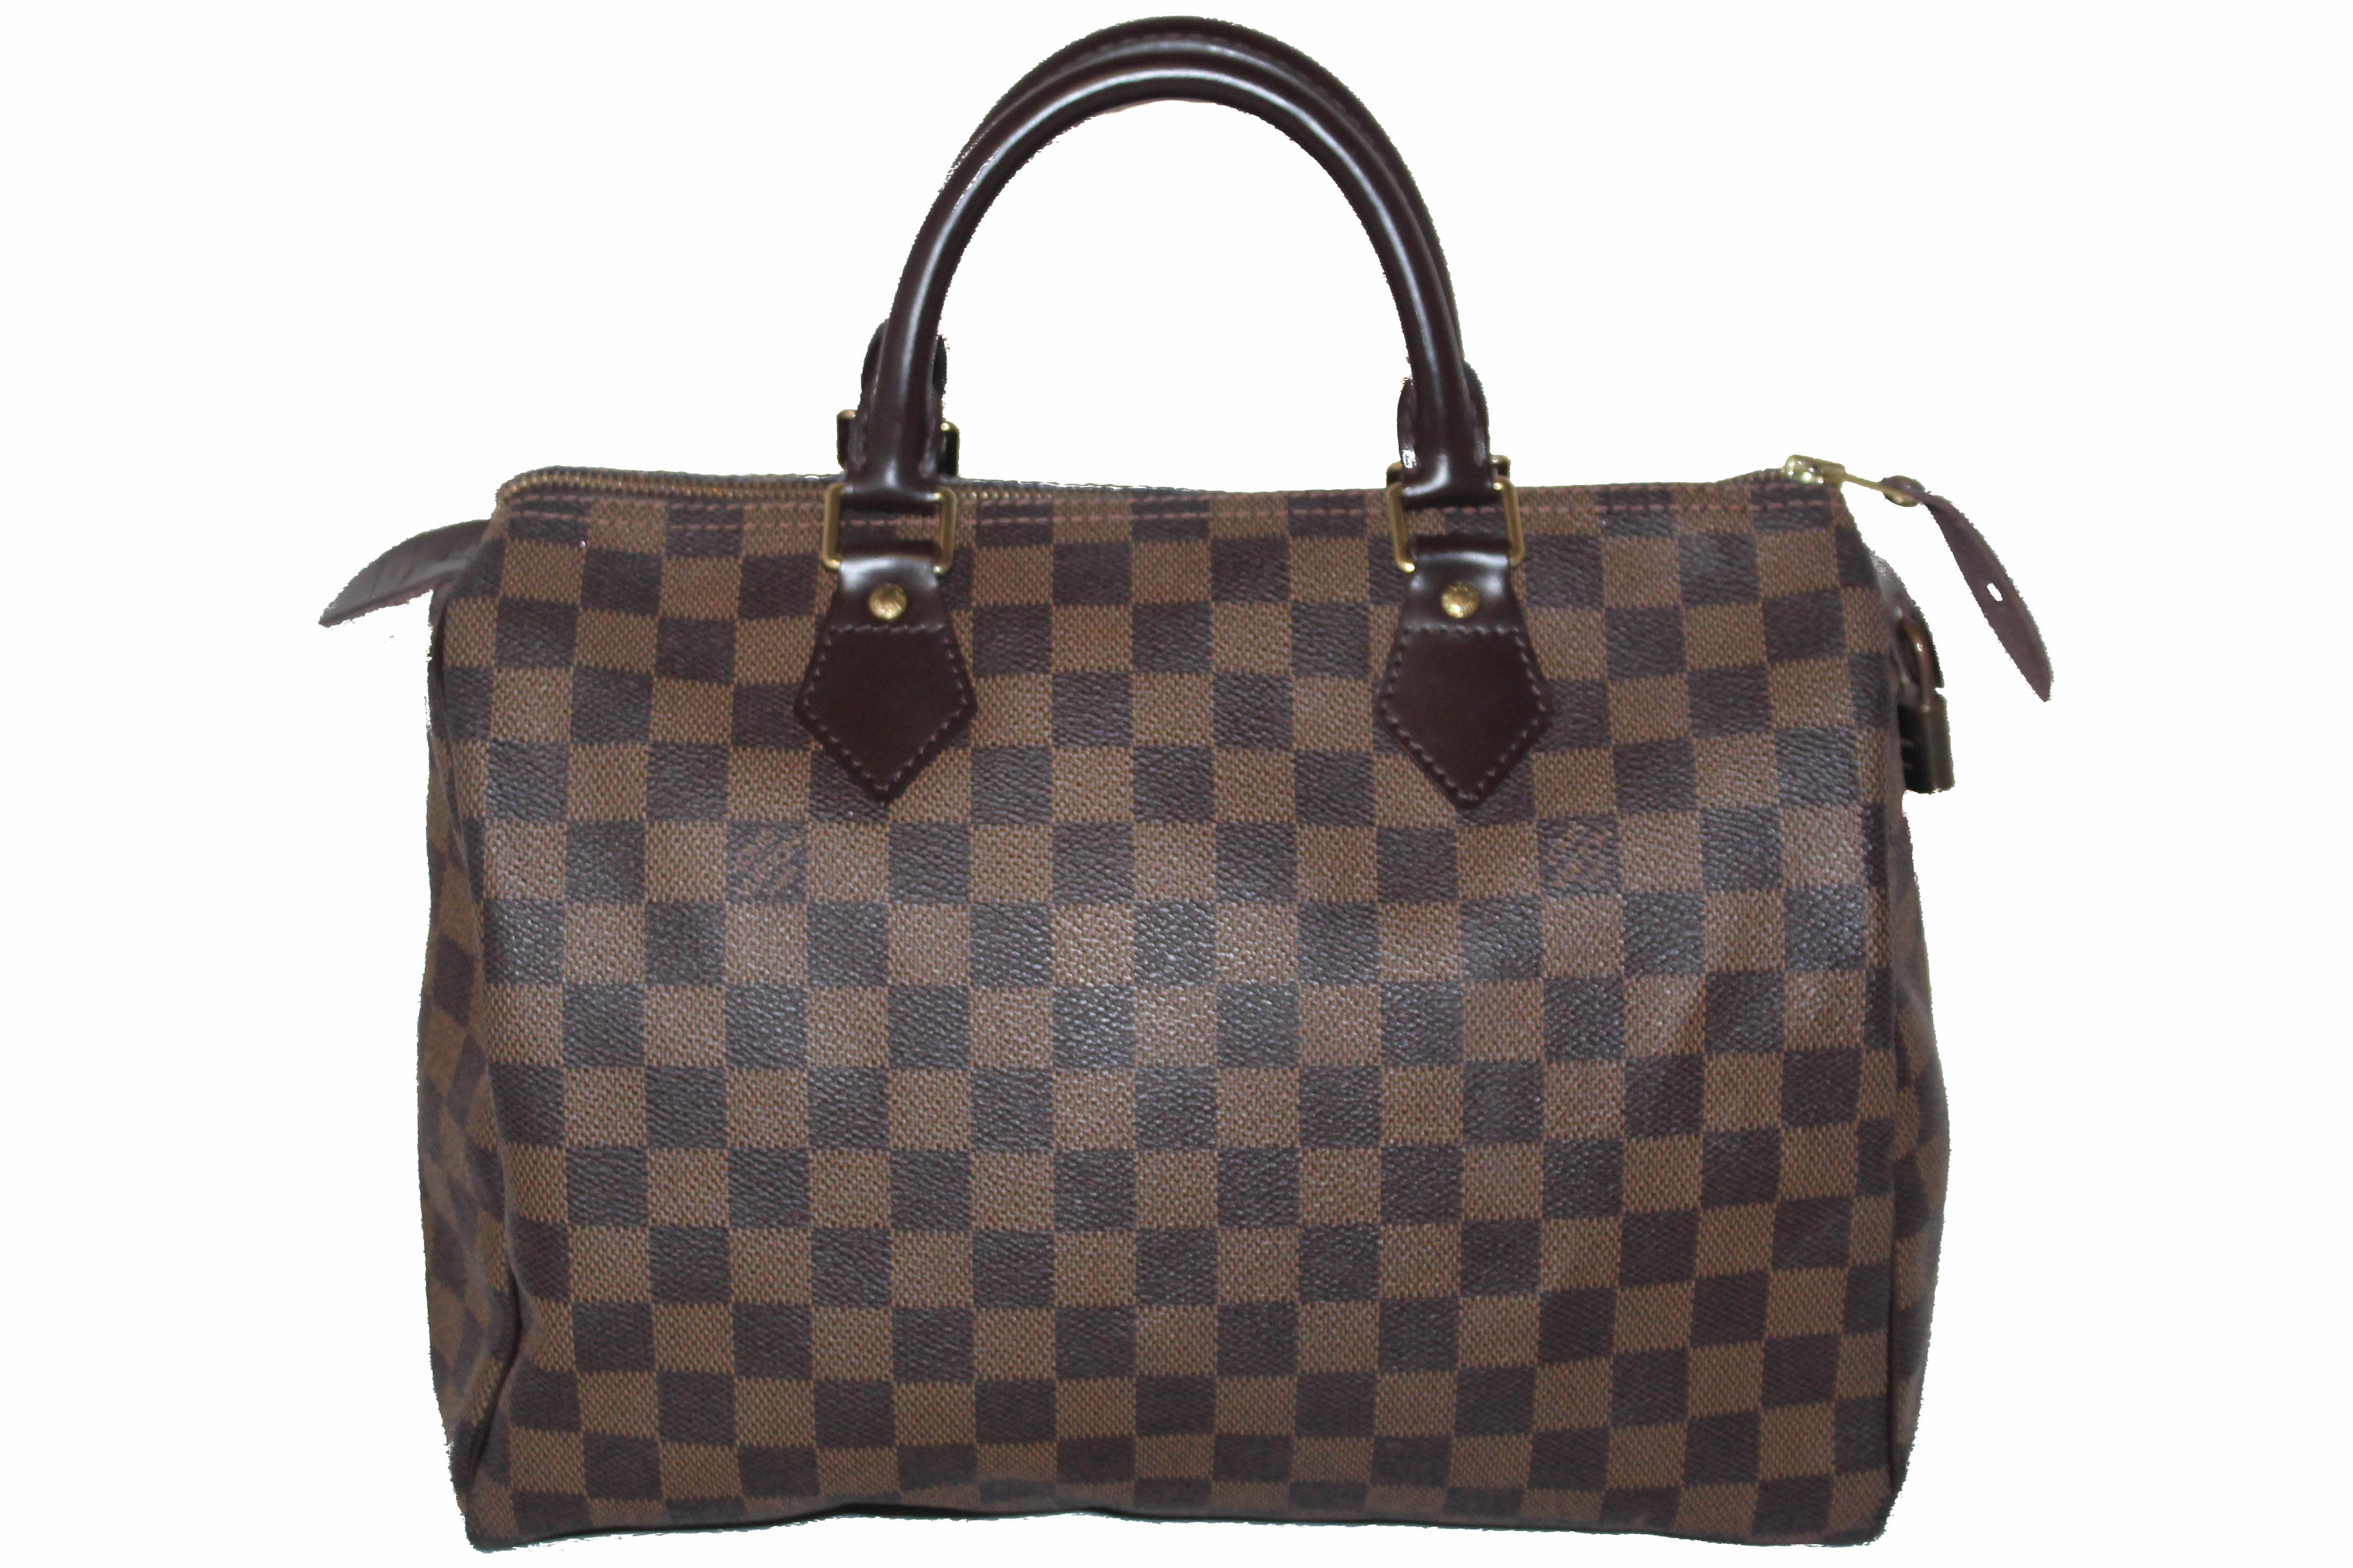 Authentic Louis Vuitton Damier Ebene Speedy 30 Handbag